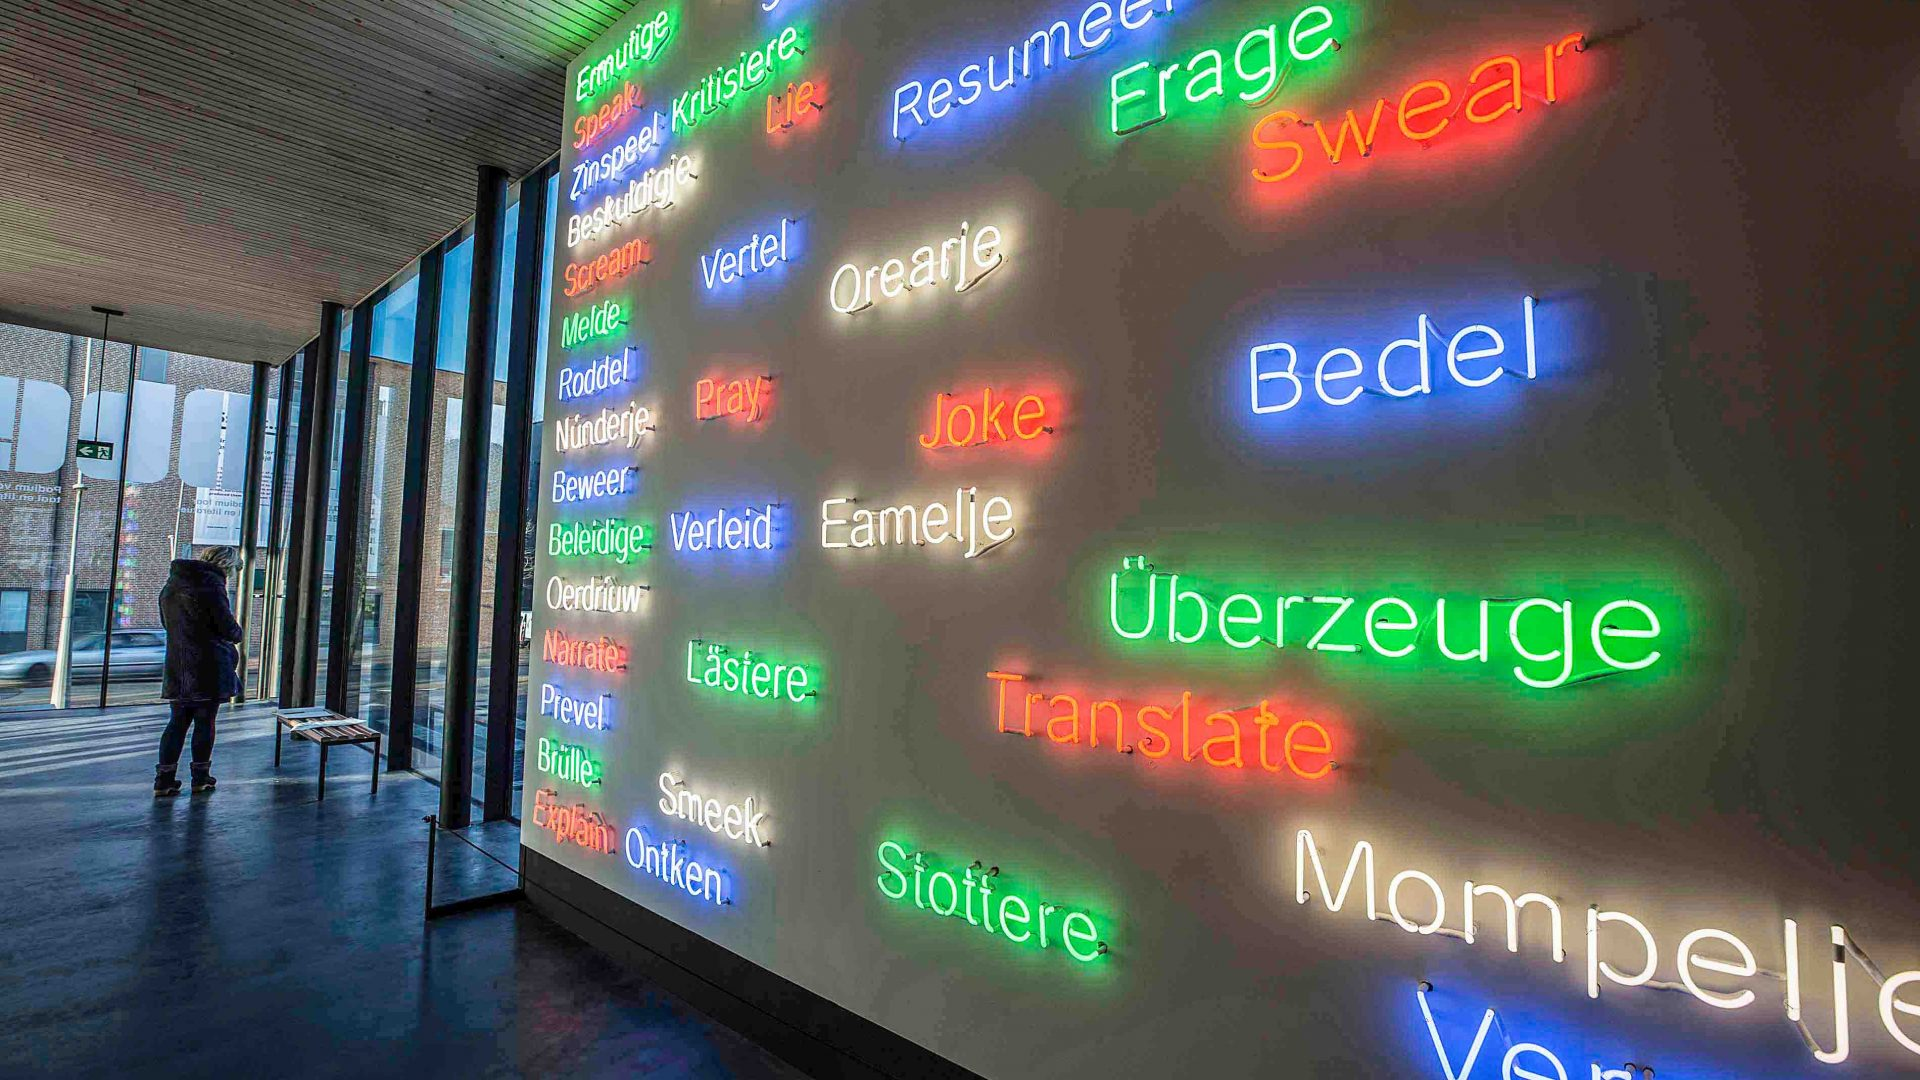 Lan Fan Taal is an exhibit that explores every language on the planet through multi-lingual visual projections, audio soundscapes, and poetry.